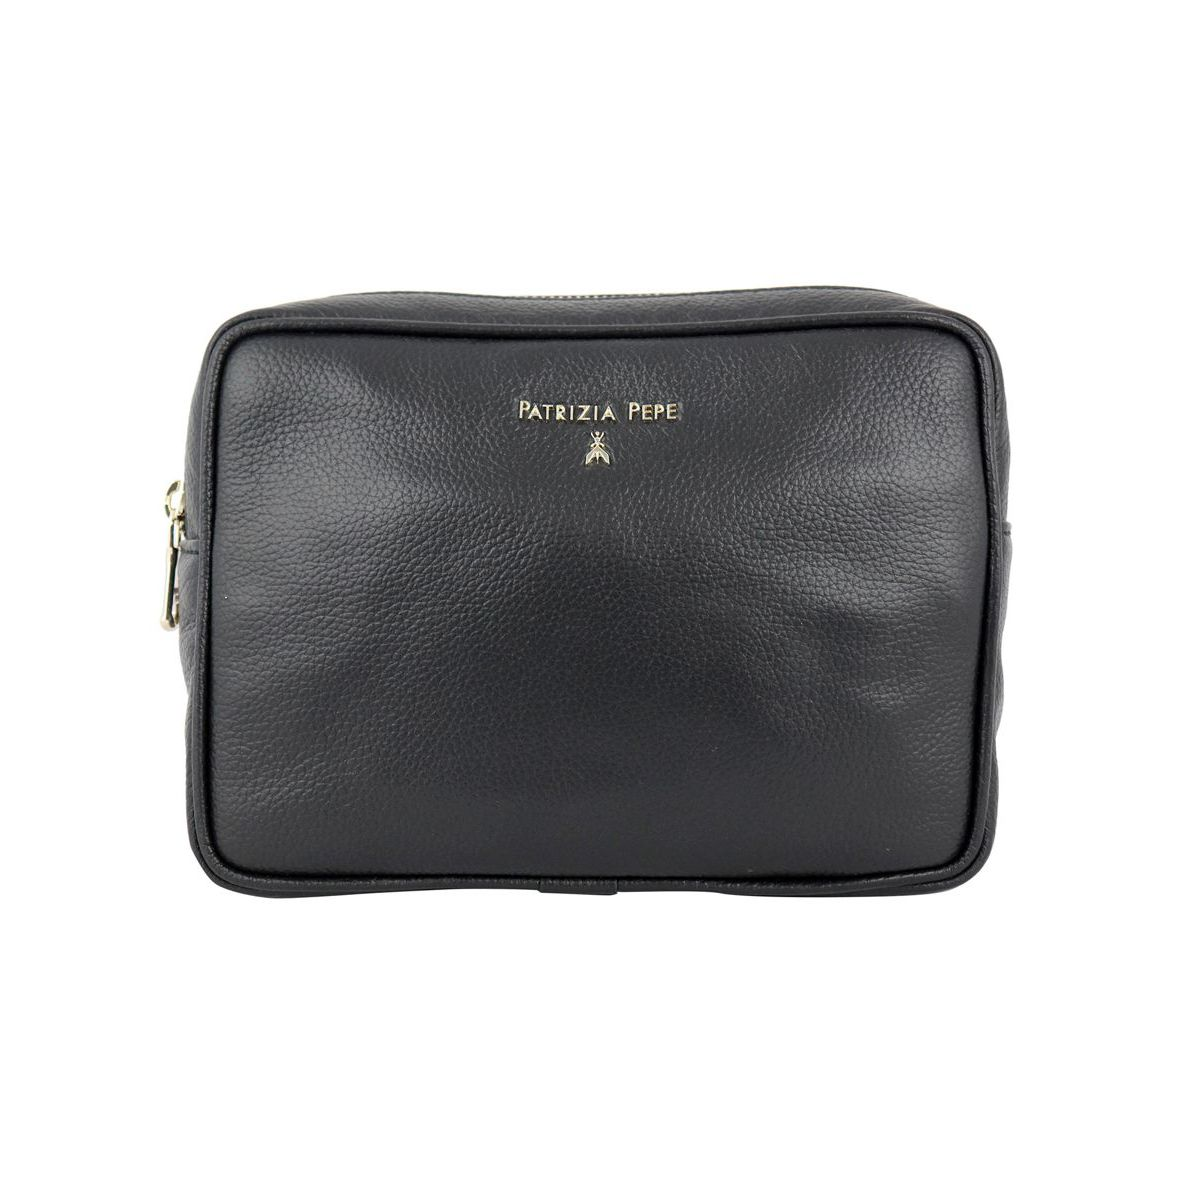 Beauty makeup case in textured leather Black Patrizia Pepe